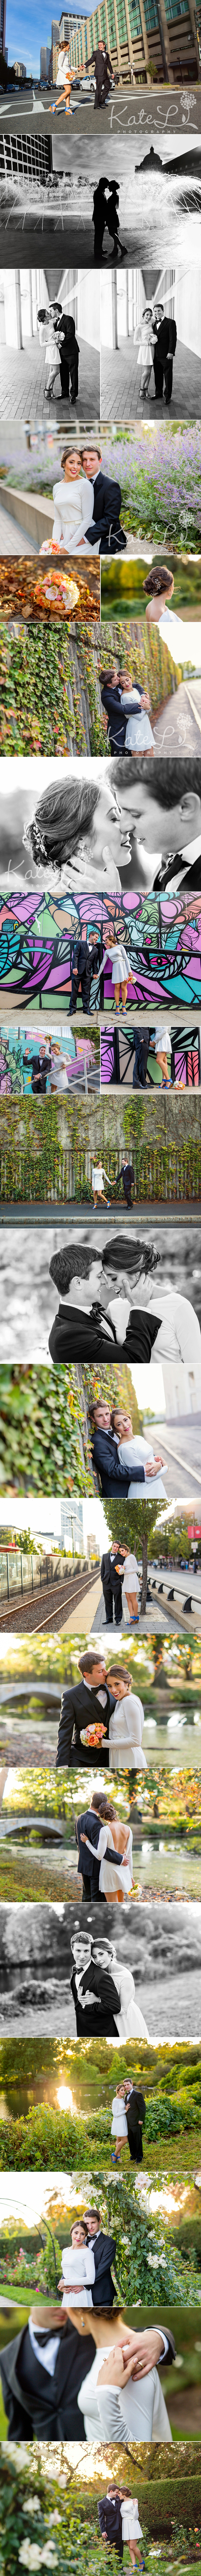 Wedding photos taken at the Northeastern University campus in Boston, MA, captured by elopement photographer Kate Lemmon.